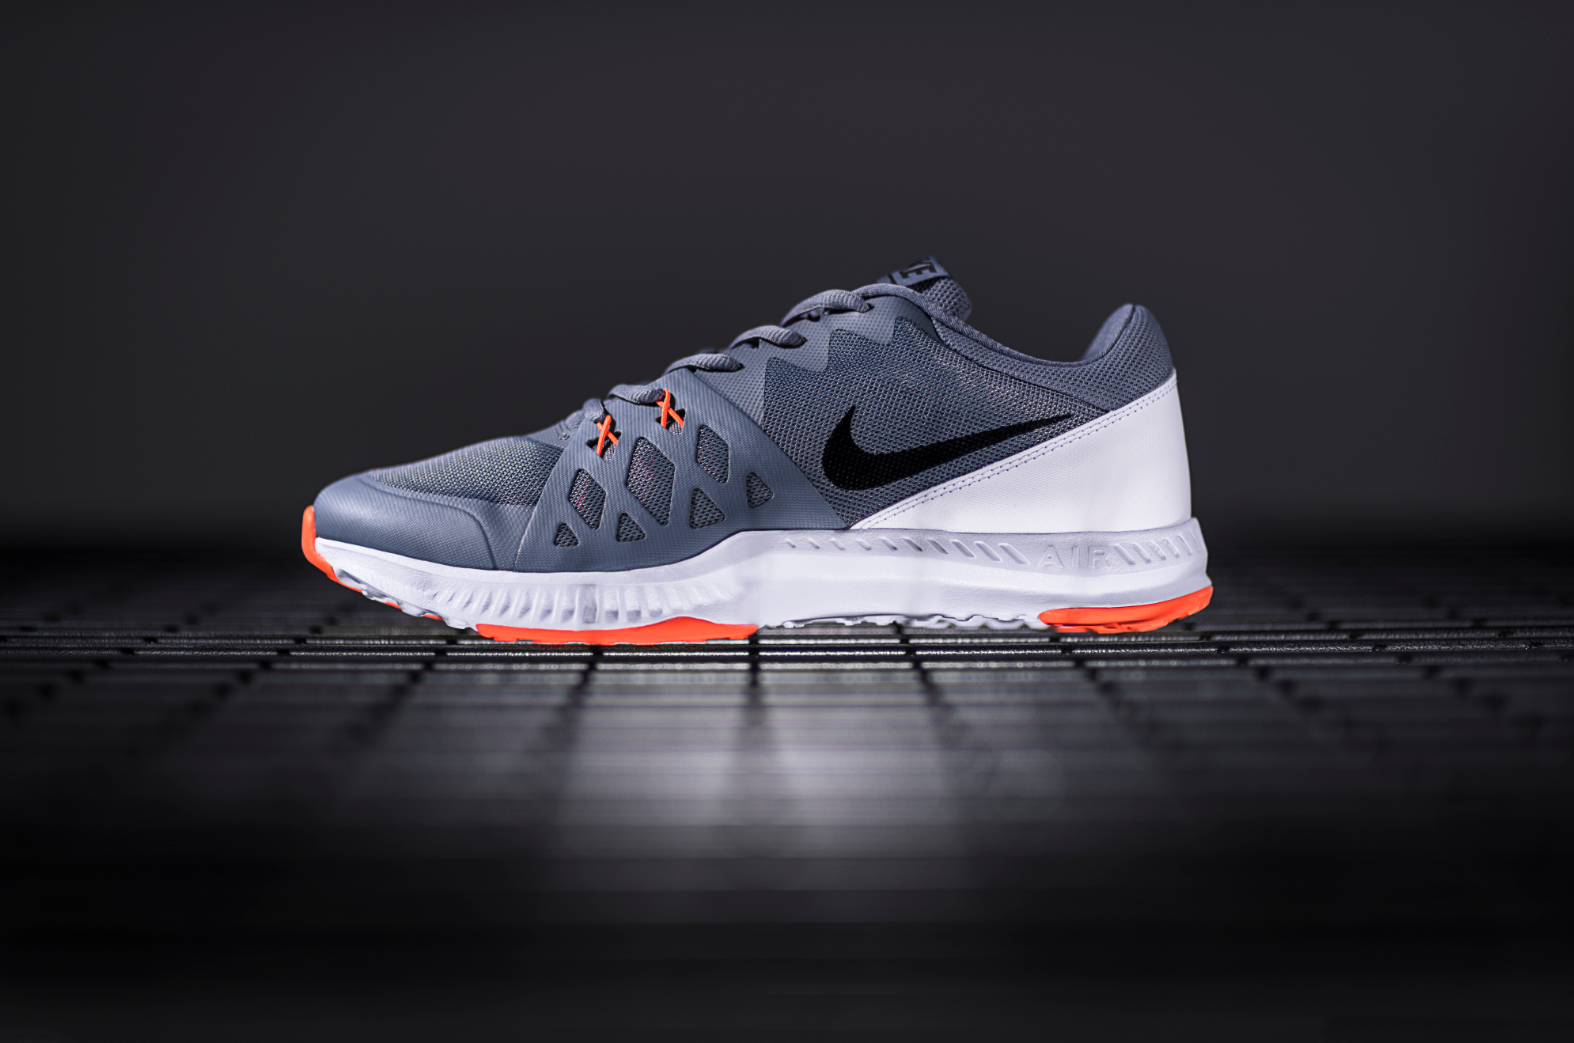 save off 143a5 70d8f Find a wide range of mens trainers on our online store today including the Nike  Air Epic Speed 2 Mens Training Shoes, don t miss out!